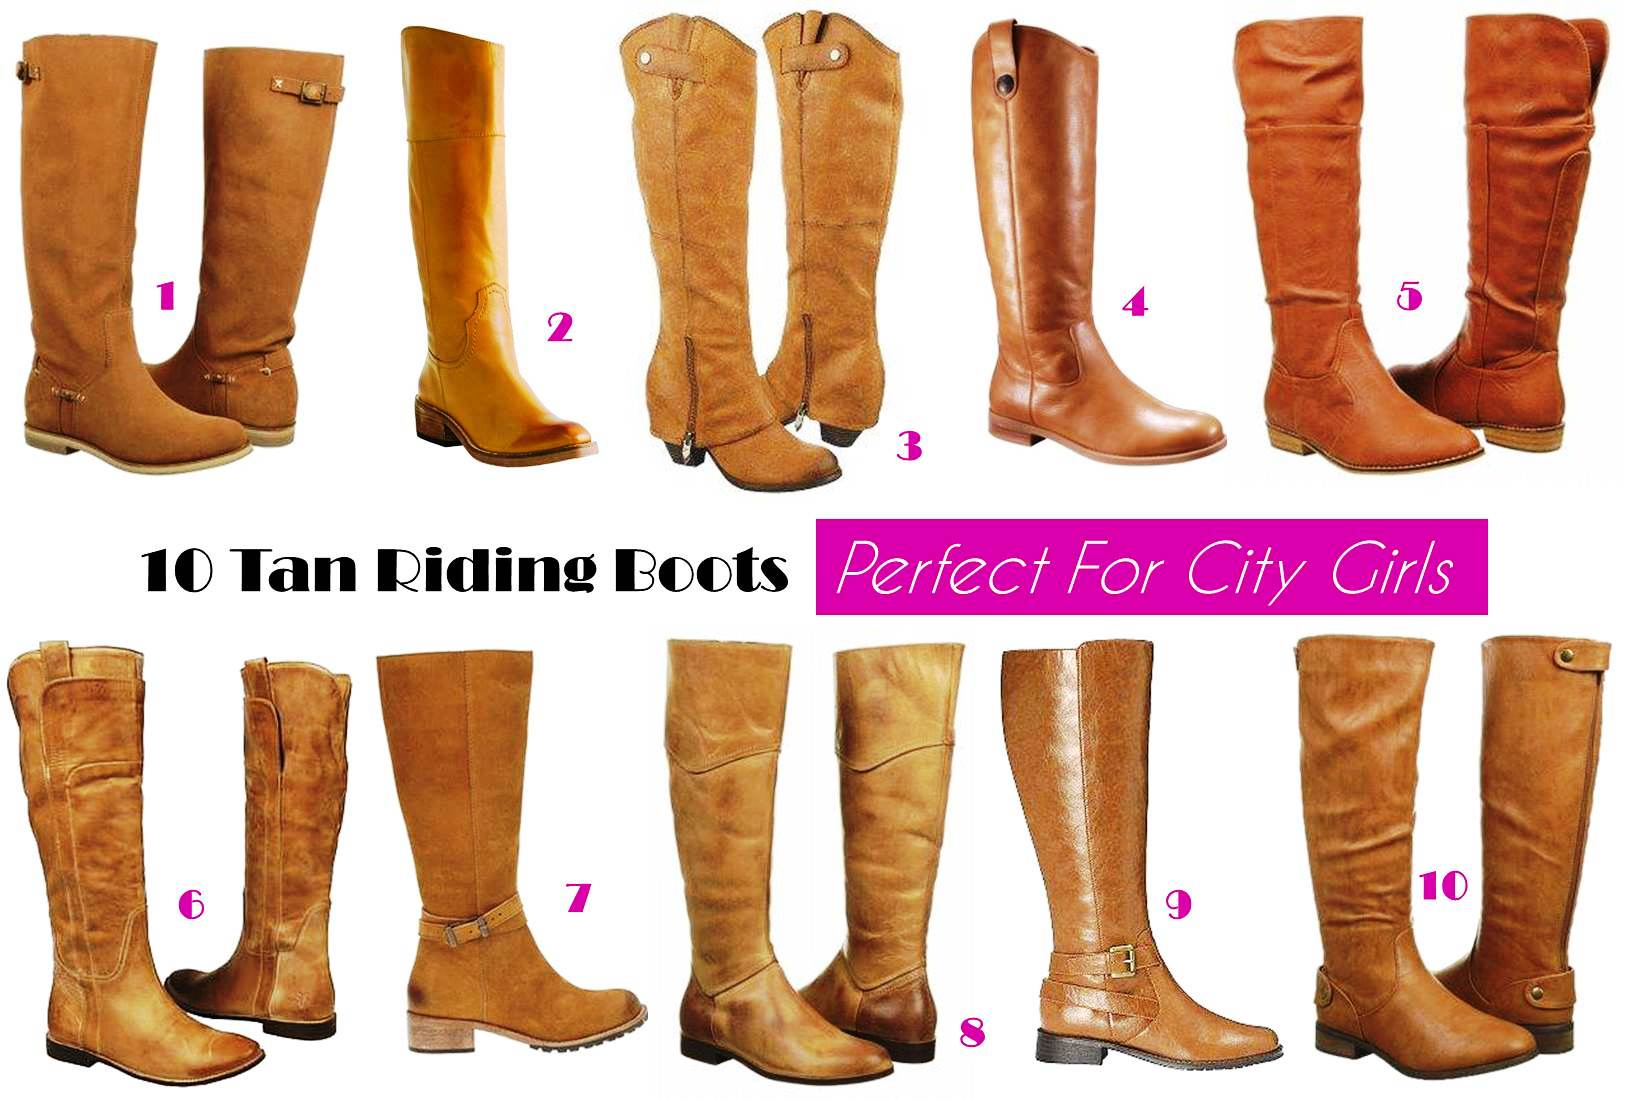 10 Tan Riding Boots Perfect For City Girls | Midtown Girl